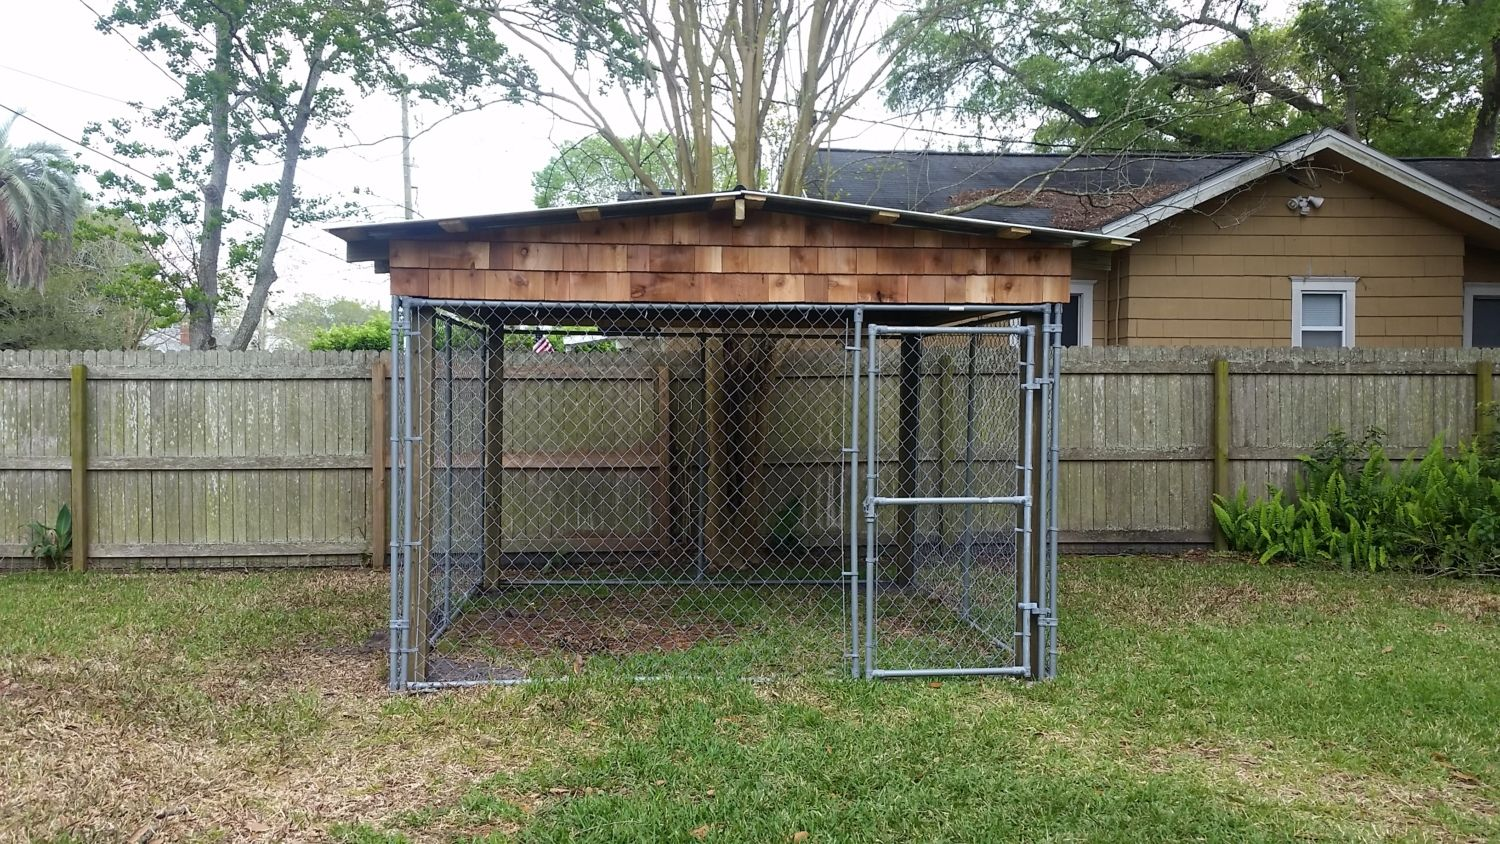 Chicken Coop - Preparing home for my chicks